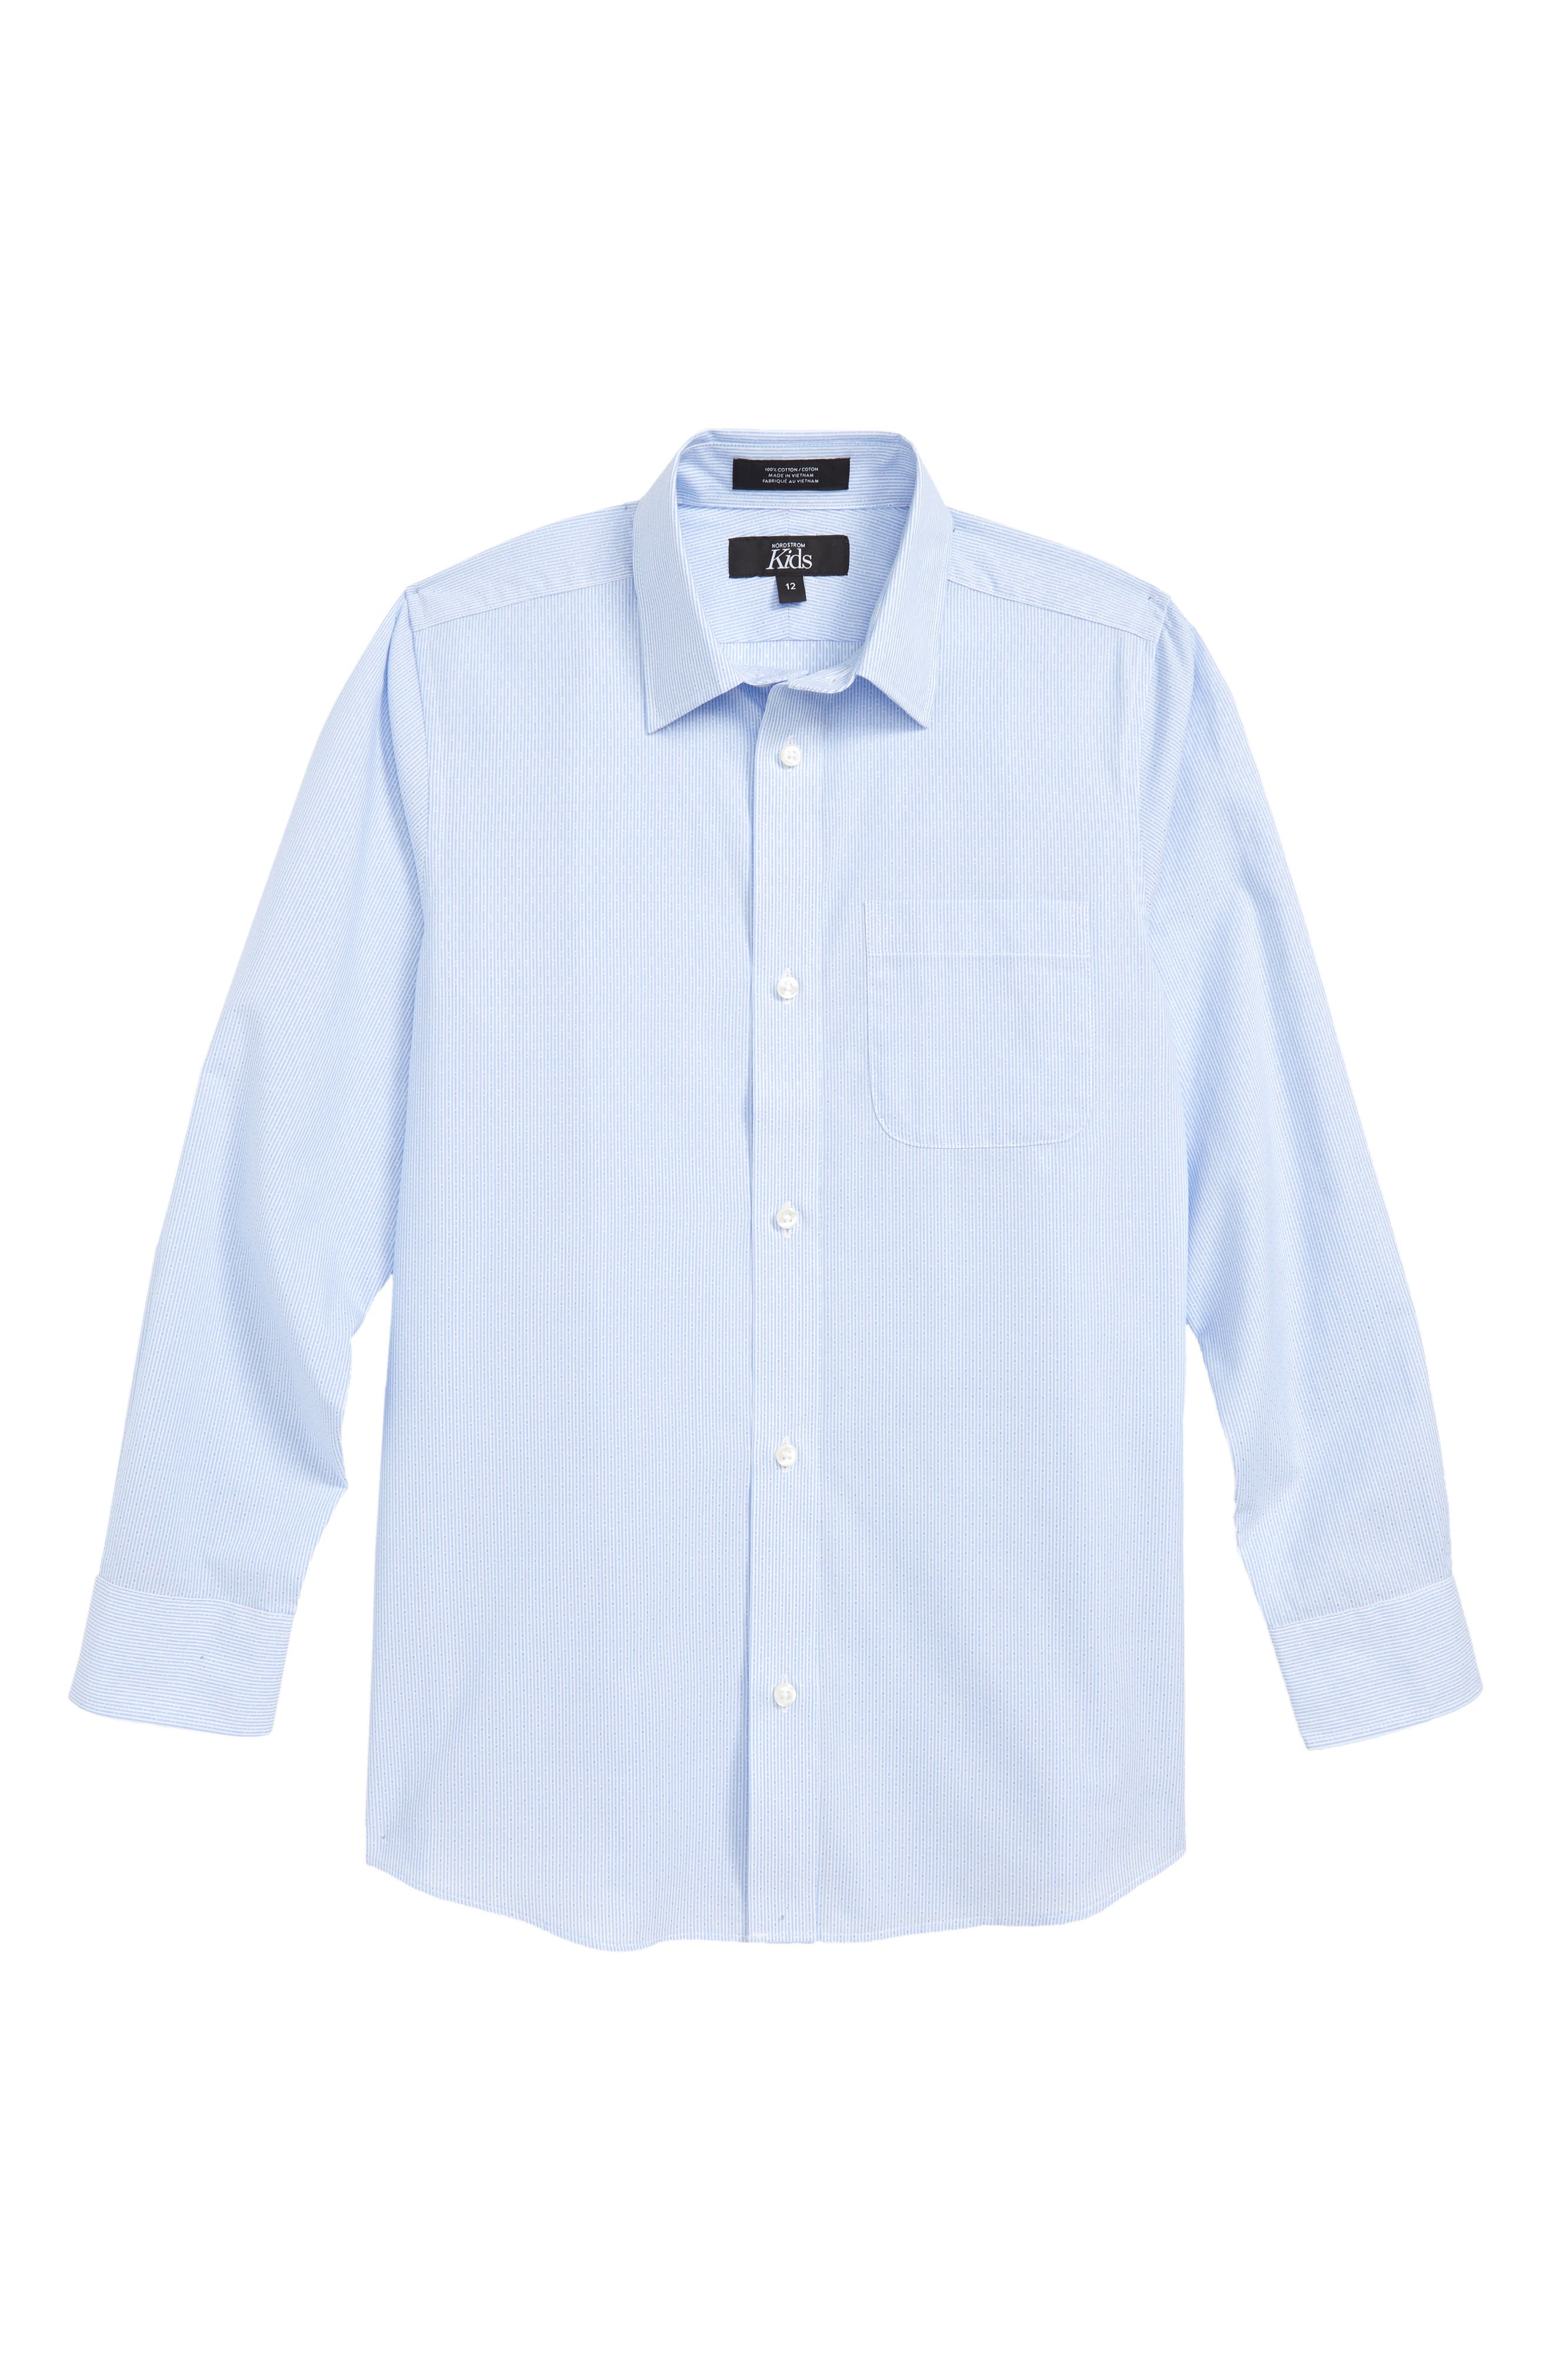 Robbia Dobby Dress Shirt,                         Main,                         color, BLUE ROBBIA- WHITE DOBBY